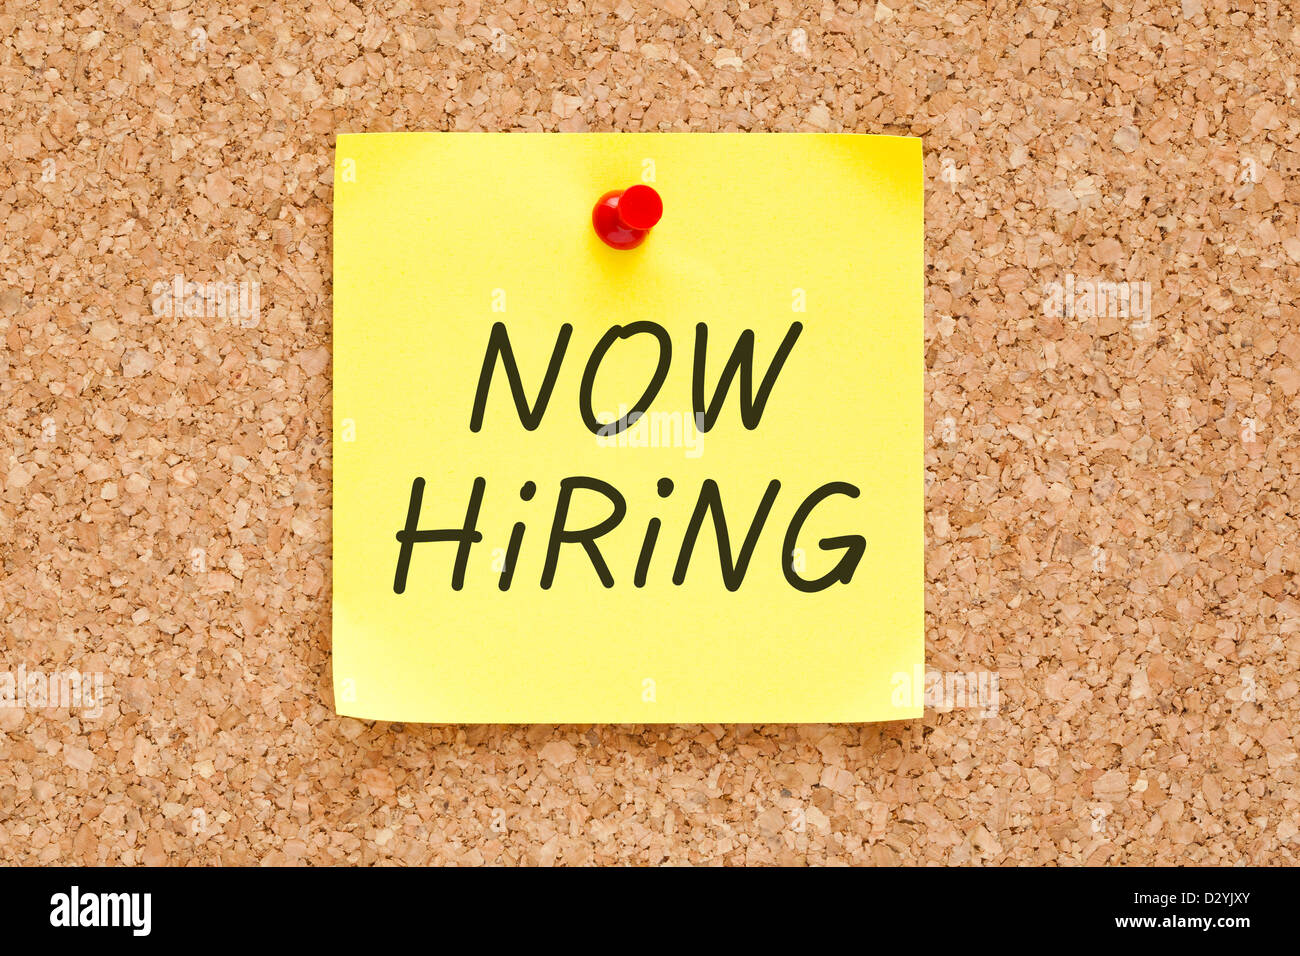 Now Hiring written on an yellow sticky note pinned with red push pin on cork bulletin board. - Stock Image